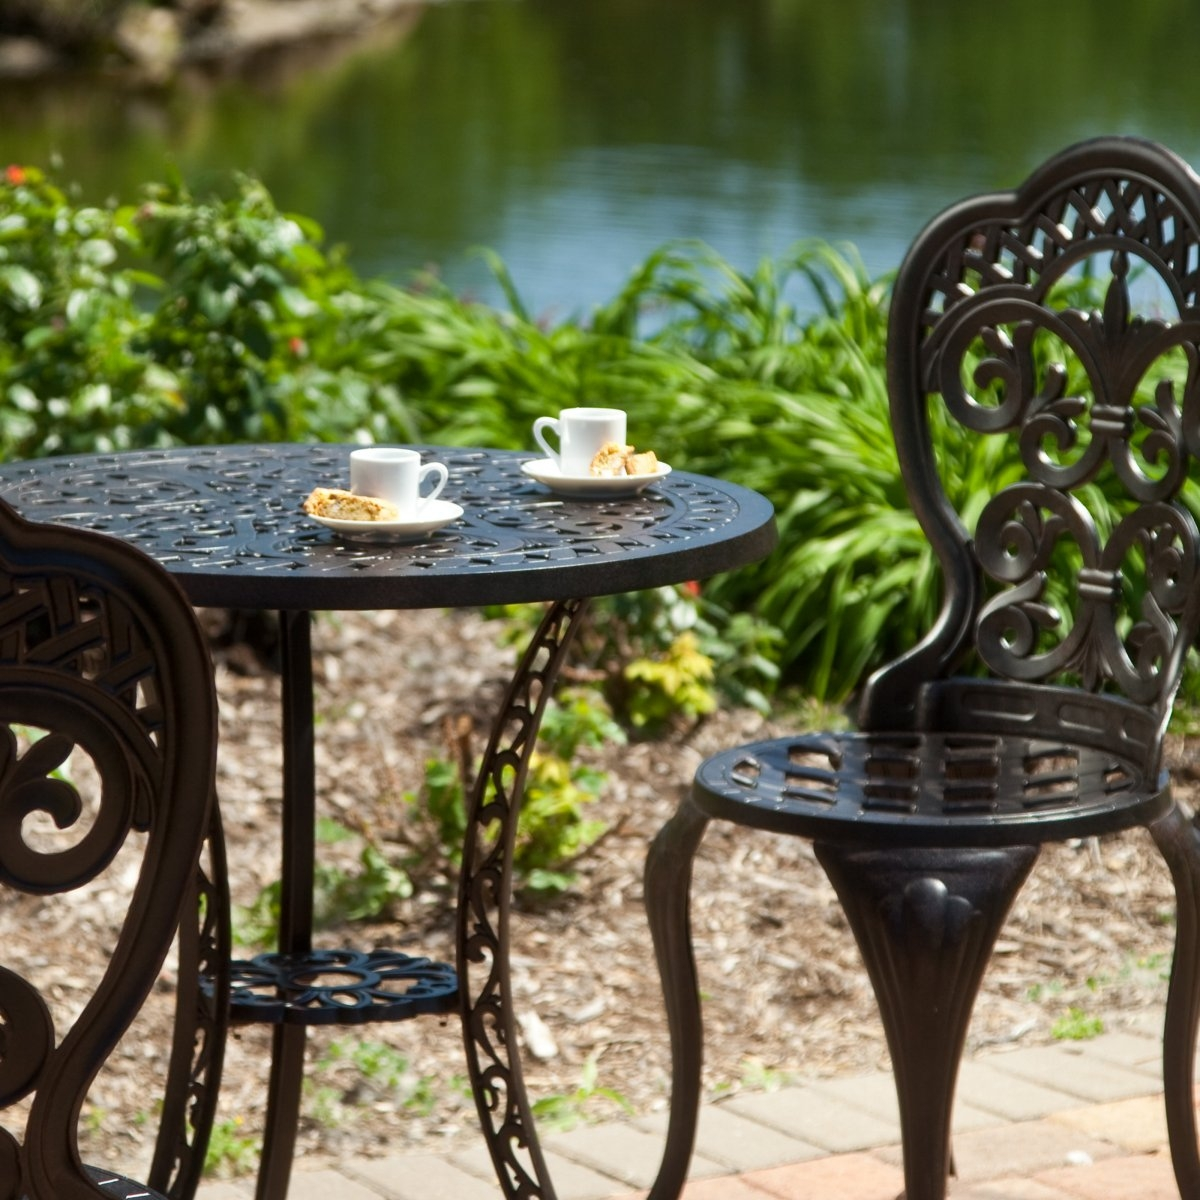 3-Piece Cast Aluminum Outdoor Bistro Set with Table and 2 Chairs, 3ABS21901 :  Perfect for breakfast on the balcony or for creating an intimate seating area in your garden, this 3-Piece Cast Aluminum Outdoor Bistro Set with Table and 2 Chairs makes a wonderful choice. With traditional fleur designs, this bistro set has the look of classic wrought iron sets, but it's made of cast aluminum so it won't rust like wrought iron. Some assembly is required. This table even has an umbrella hole! We recommend using a 6 or 7.5 foot umbrella with a 30-40 lb. umbrella base. Each piece is powder-coated for durability; Durable stainless steel hardware; Umbrella hole accommodates 1.5 inch poles; Assembly Required: Yes; Finish: Antique Wine; Seating: 2 - 3 Person; Style: Bistro Dining Sets; Table Shape: Round; Table Top Material: Aluminum.